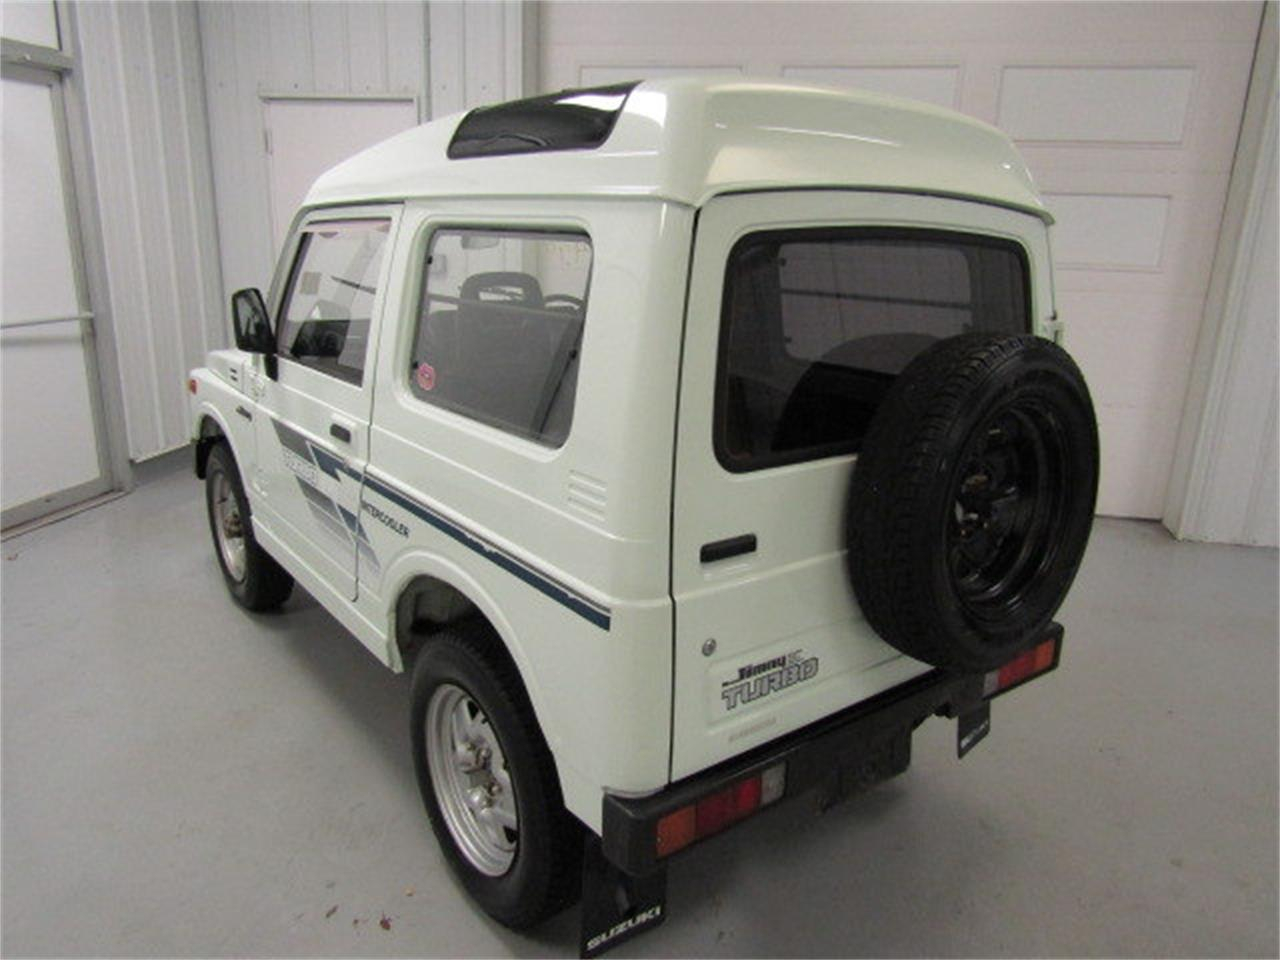 Large Picture of '87 Suzuki Jimmy located in Christiansburg Virginia - $3,999.00 Offered by Duncan Imports & Classic Cars - JM3N